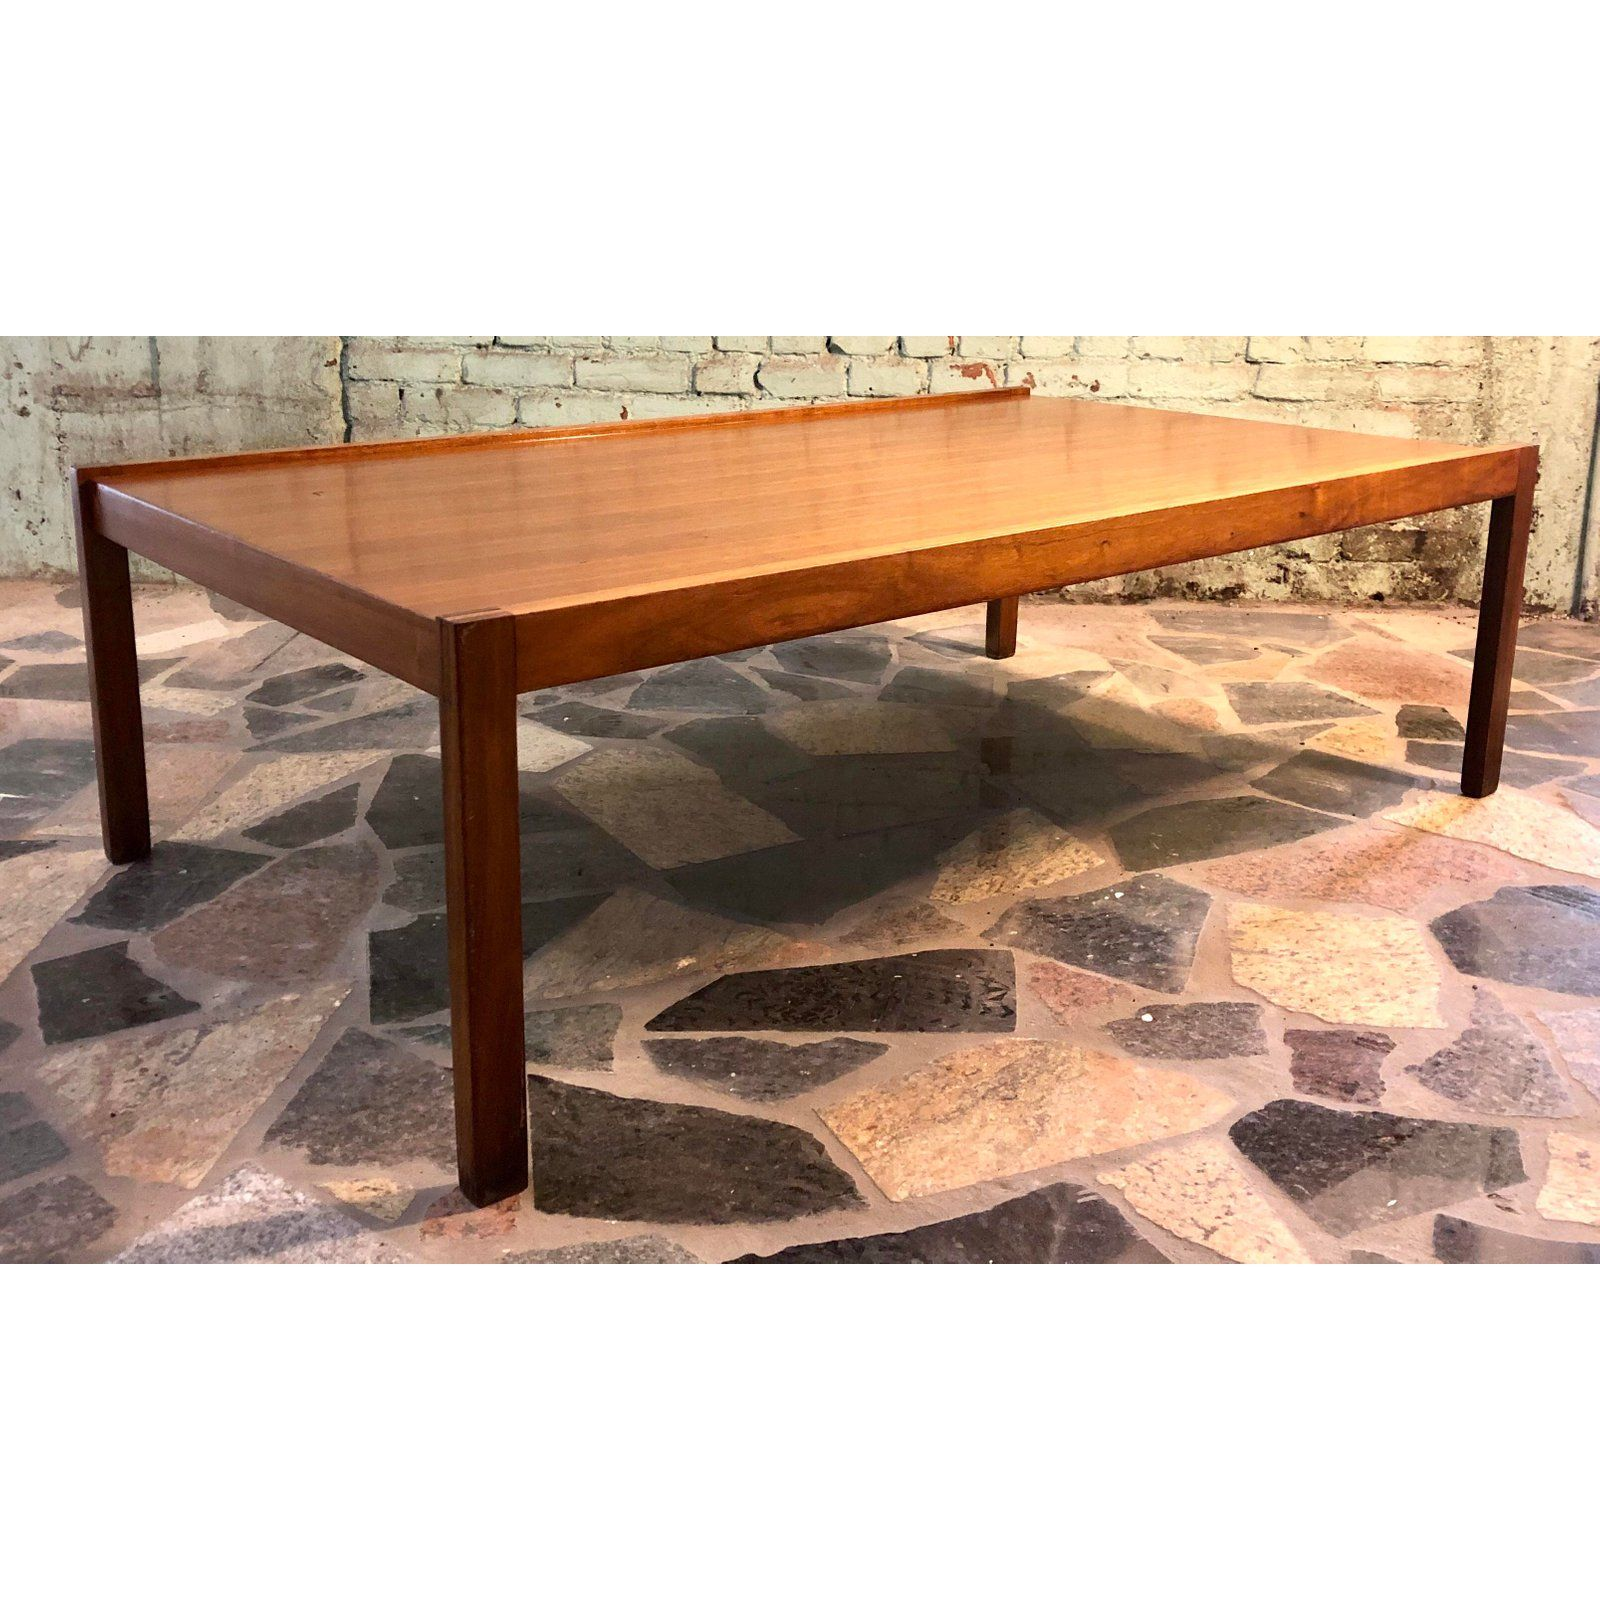 Mid 20th Century Large Mid Century Modern Teak Coffee Table For Sale Image 5 Of 11 Coffee Tables For Sale Teak Coffee Table Coffee Table [ 1600 x 1600 Pixel ]